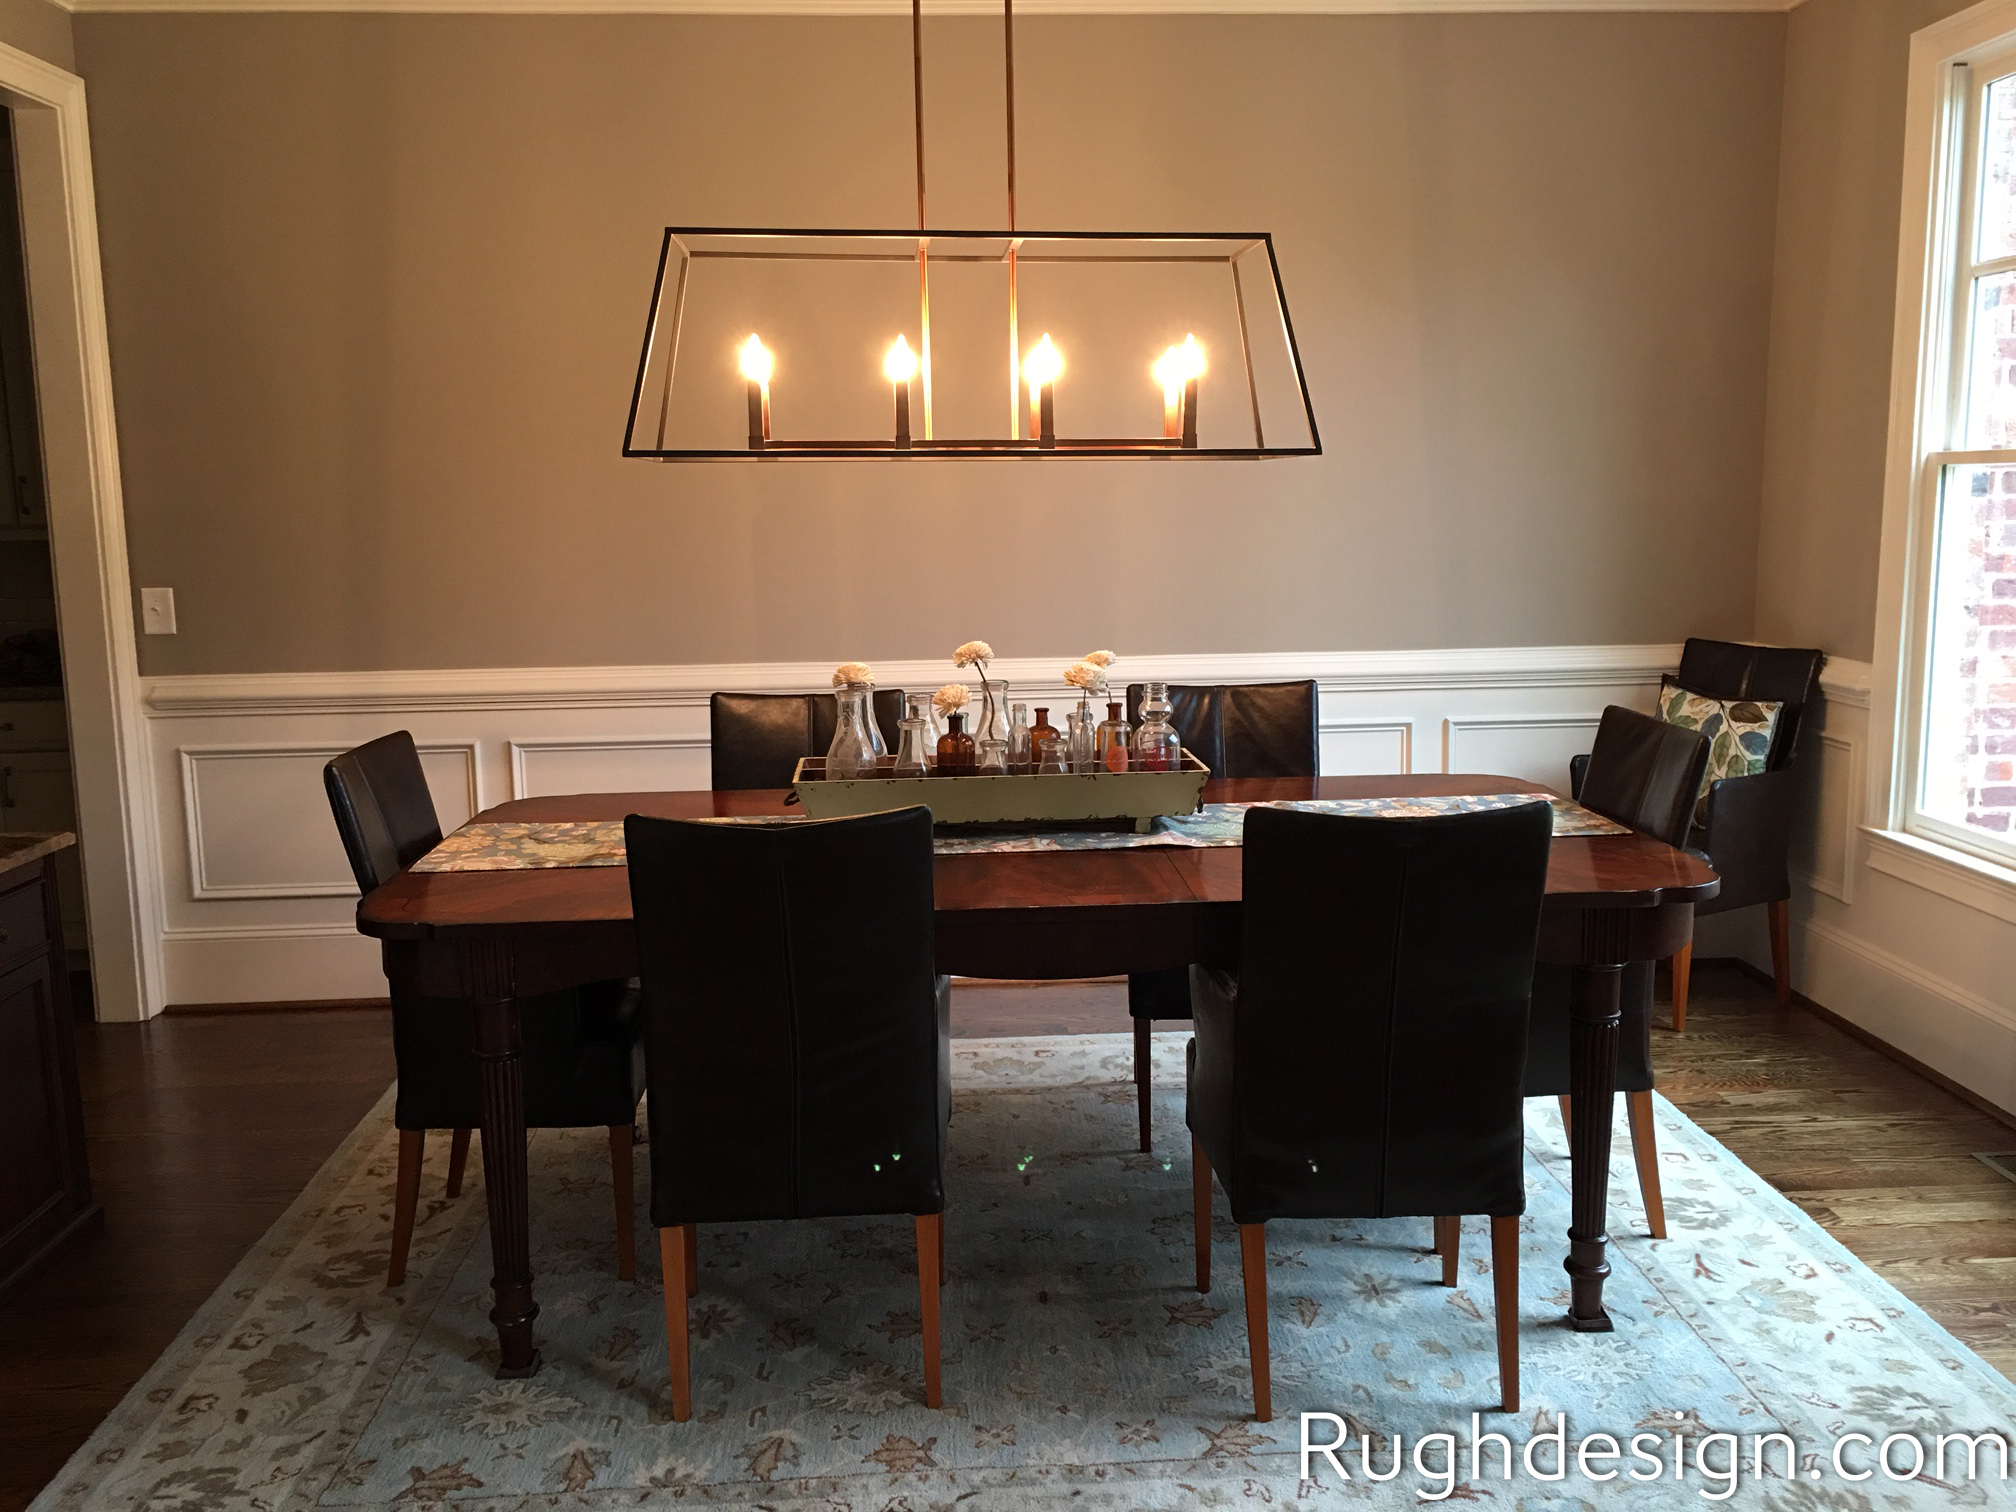 Mega Greige SW 7031 in dining room